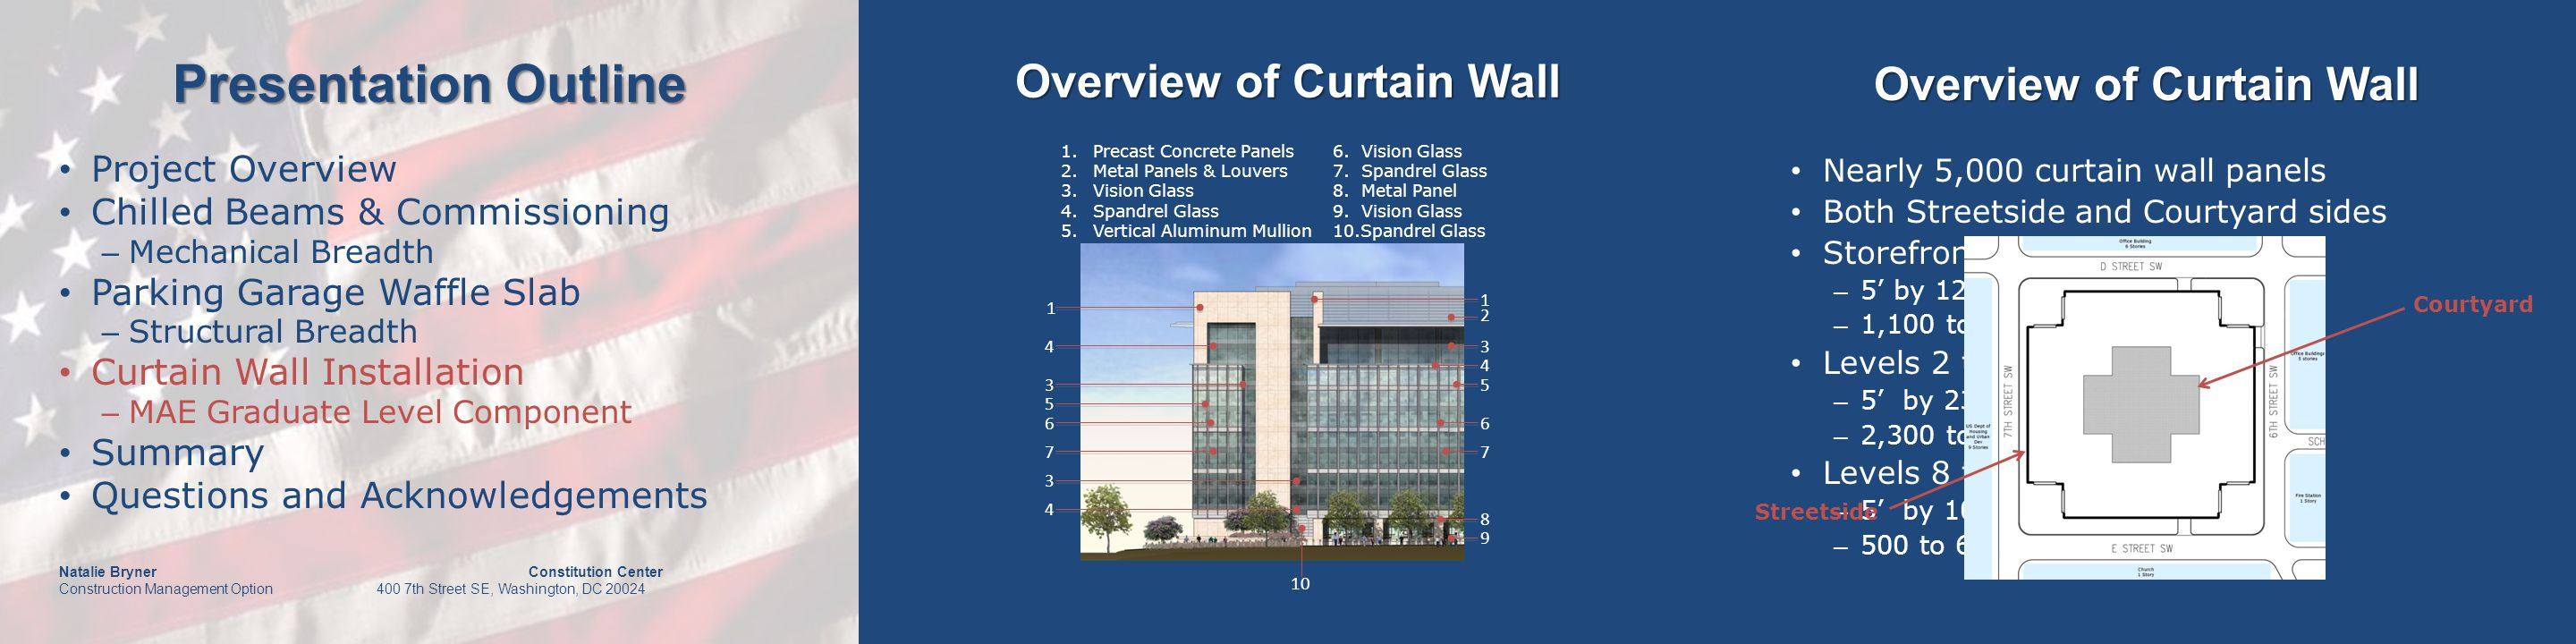 Presentation Outline Natalie Bryner Constitution Center Construction Management Option 400 7th Street SE, Washington, DC 20024 Overview of Curtain Wal